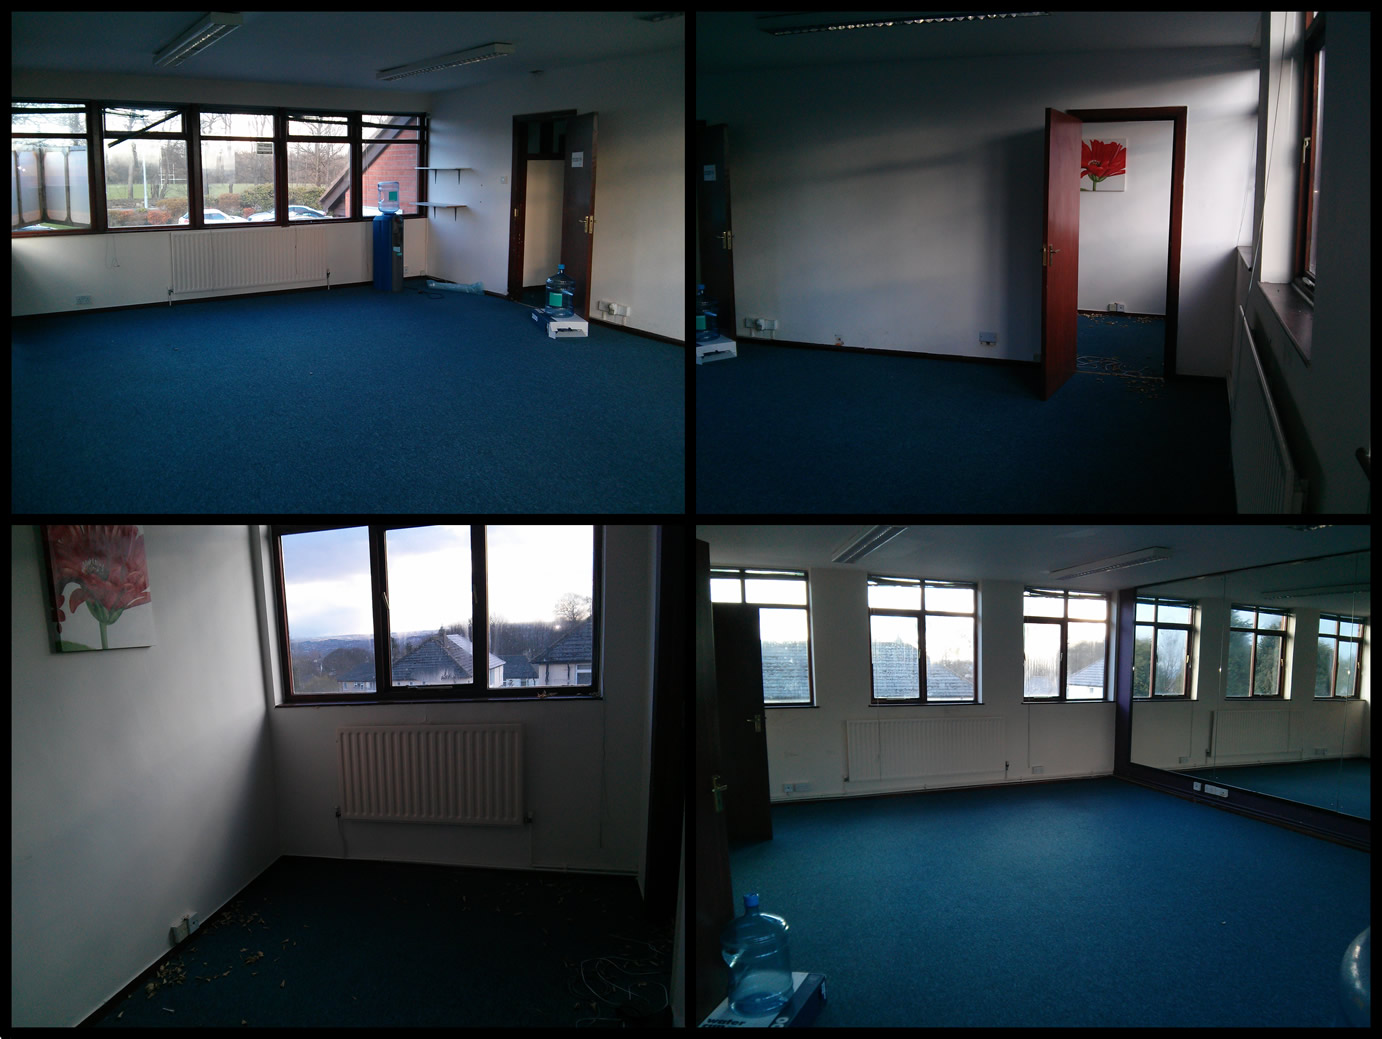 Dance Studio One Before Building Work